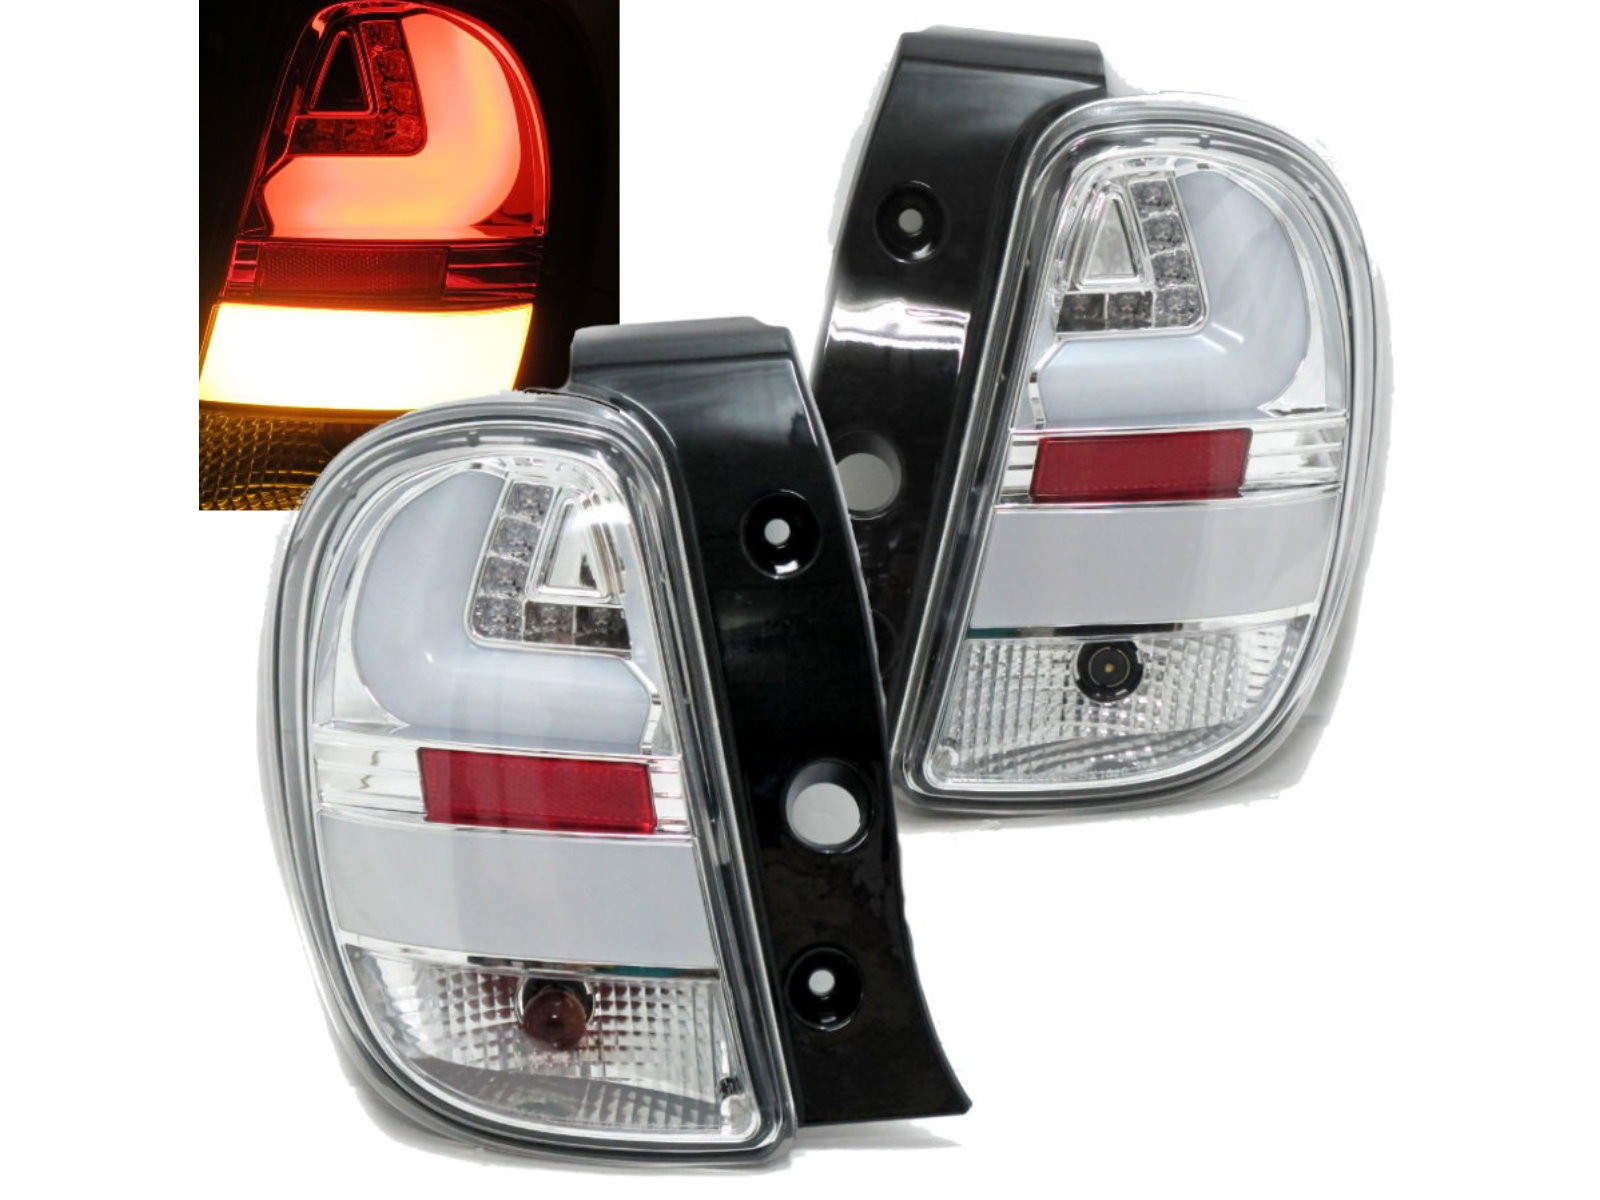 CrazyTheGod Micra/March K13 Fourth generation 2010-present Hatchback 5D LED Tail Rear Light Chrome for NISSAN